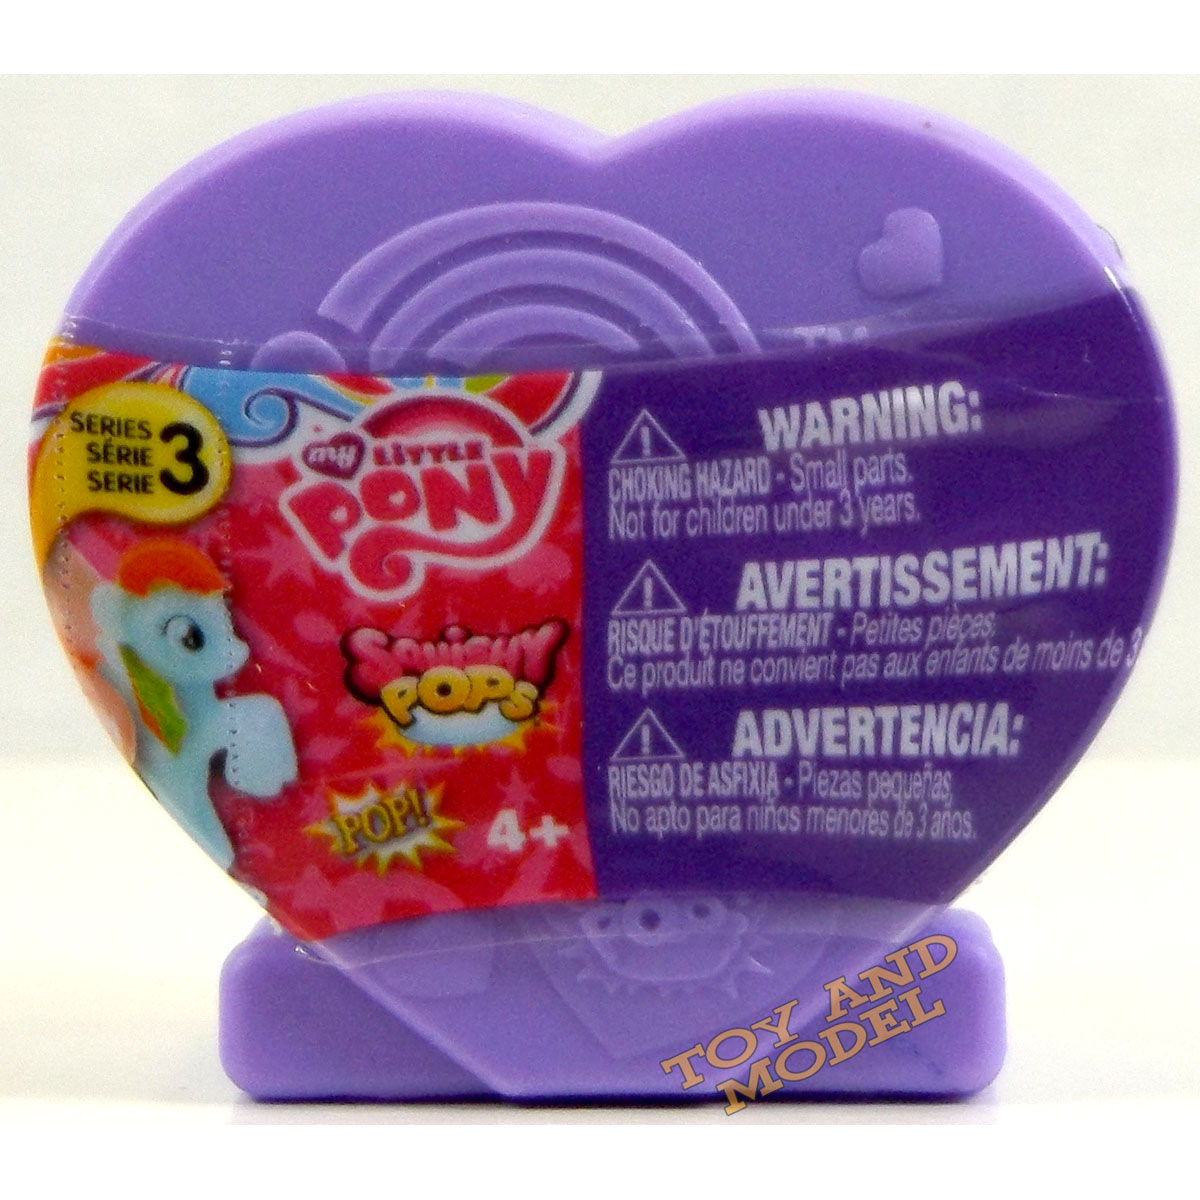 Squishy Toys Pack : 5 Pack of My Little Pony Squishy Pops Heart Case Series 3 - Fast Dispatch 4Yrs+ eBay